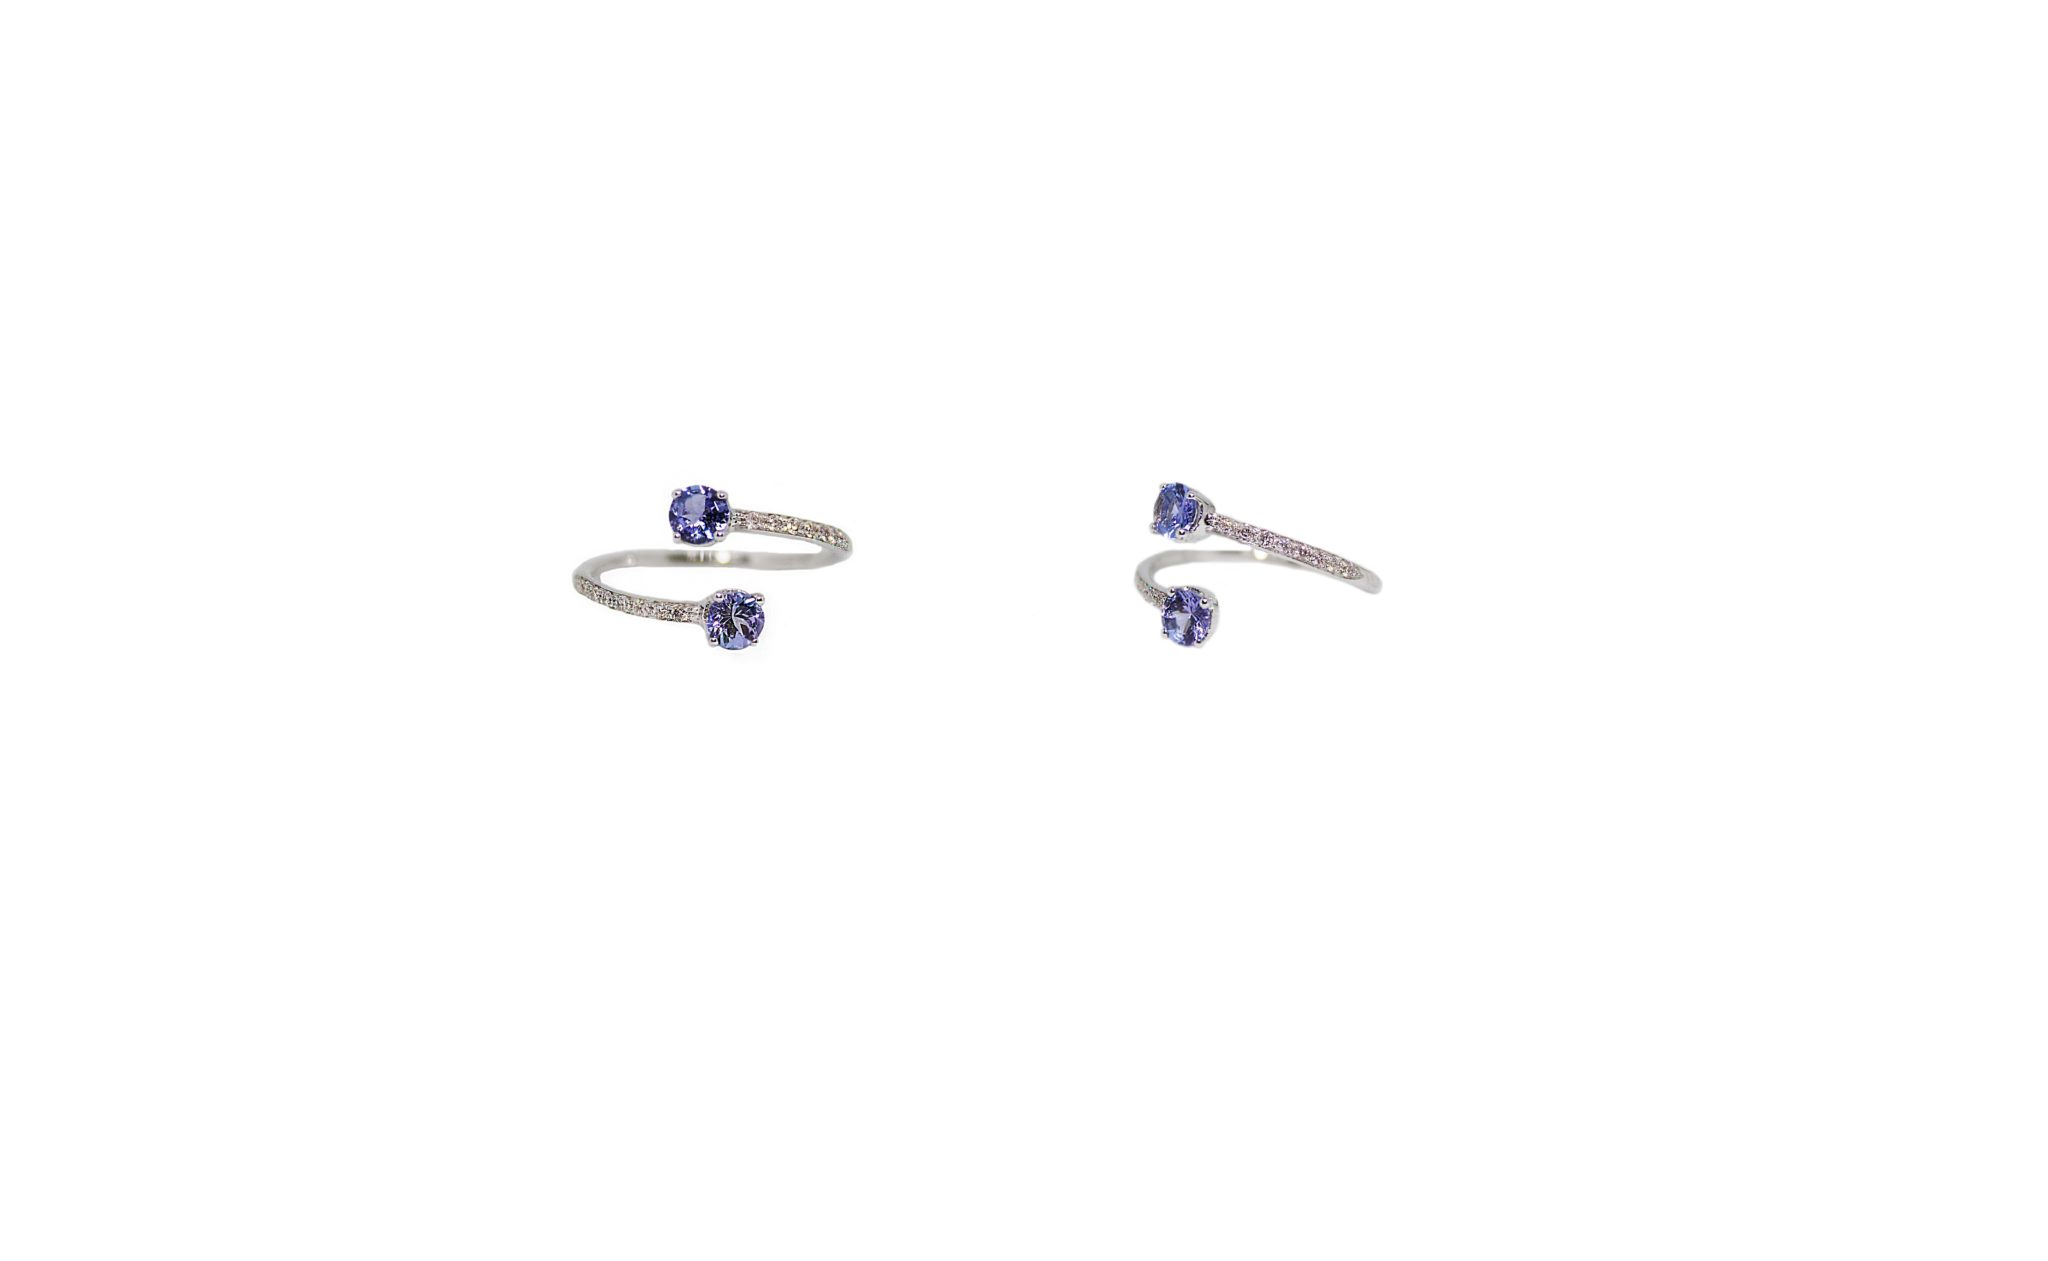 Contrarié gold ring with pavé diamonds and 2 tanzanites